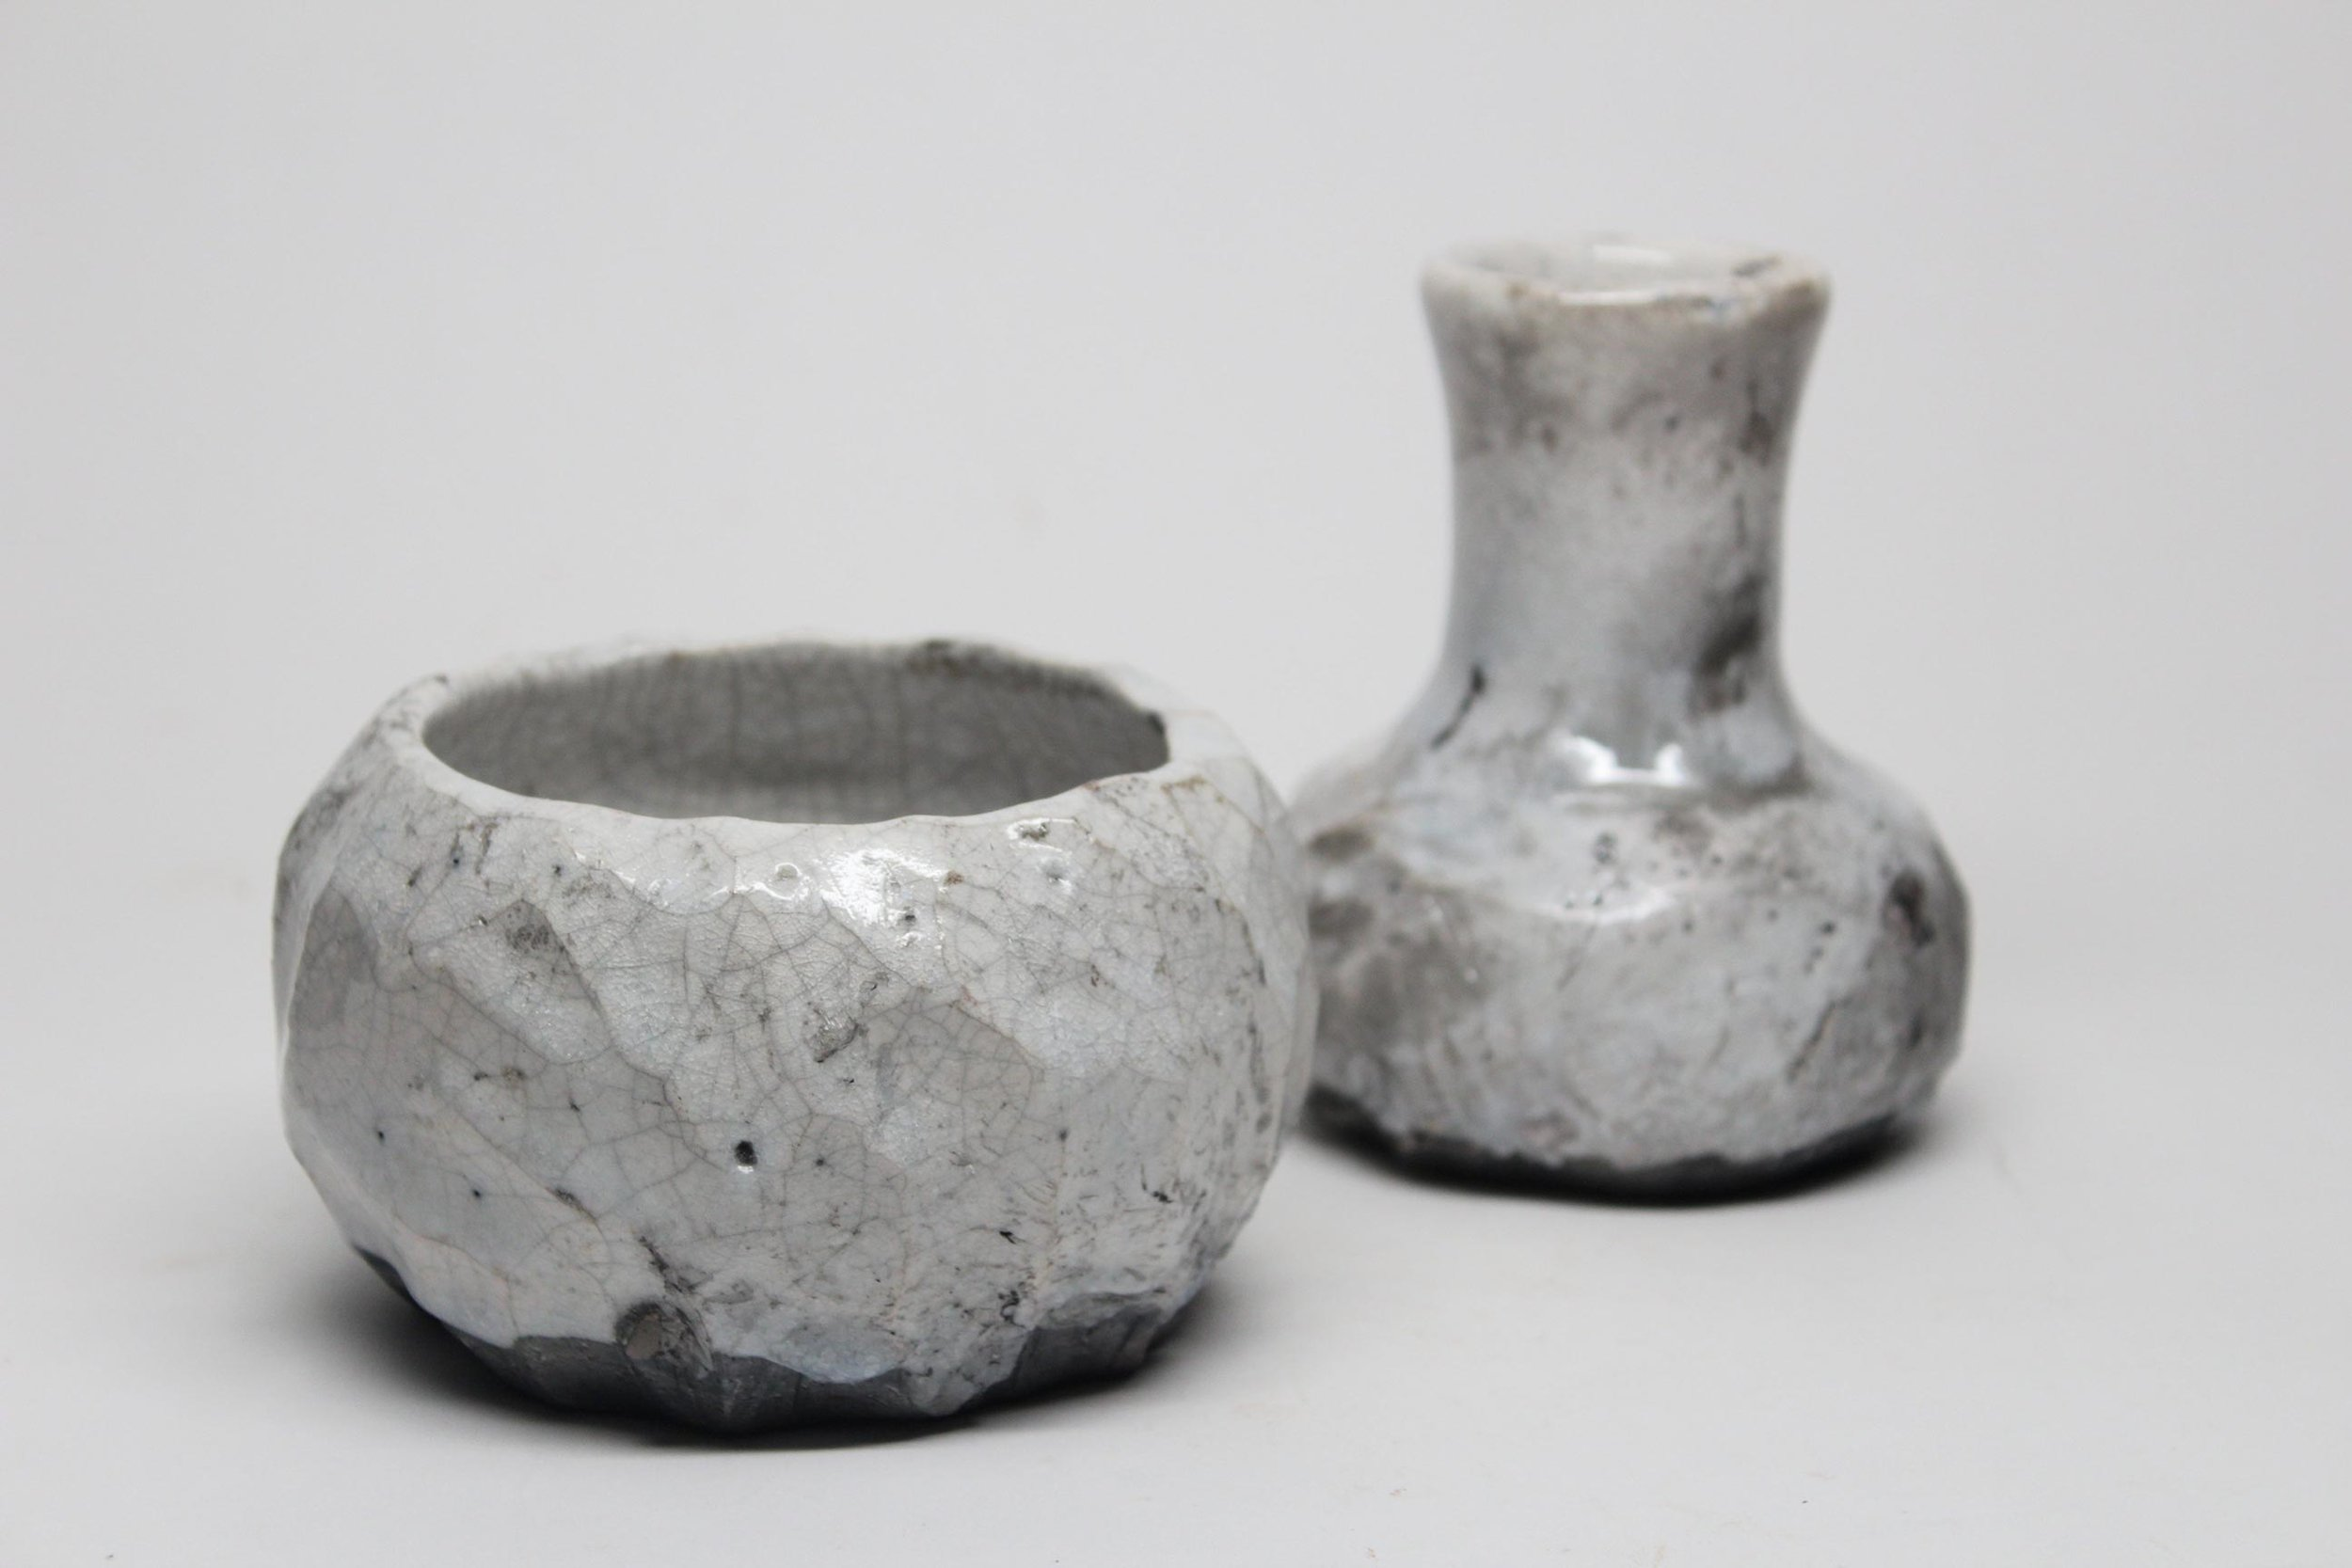 Horn_Frosted Duo_Rakued Stoneware_3-5 inches tall.jpg